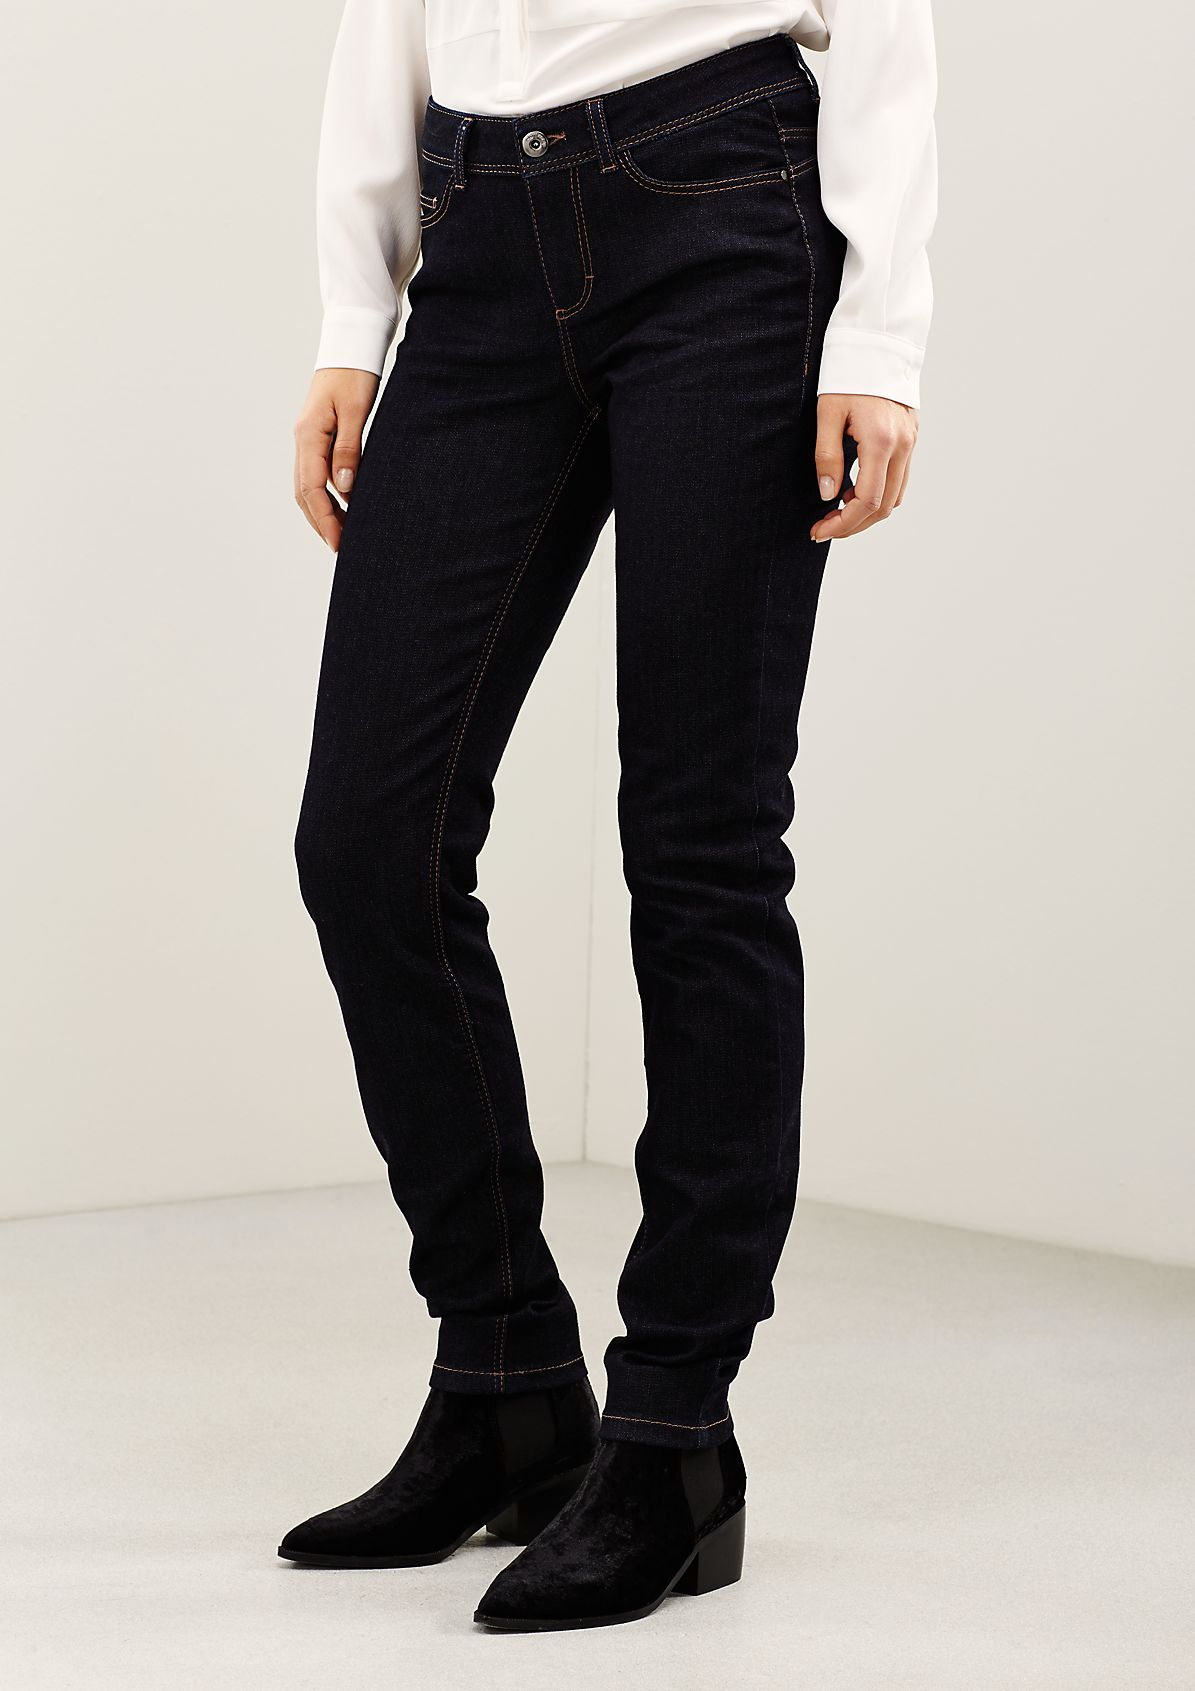 Classic jeans in a trendy unwashed look from s.Oliver